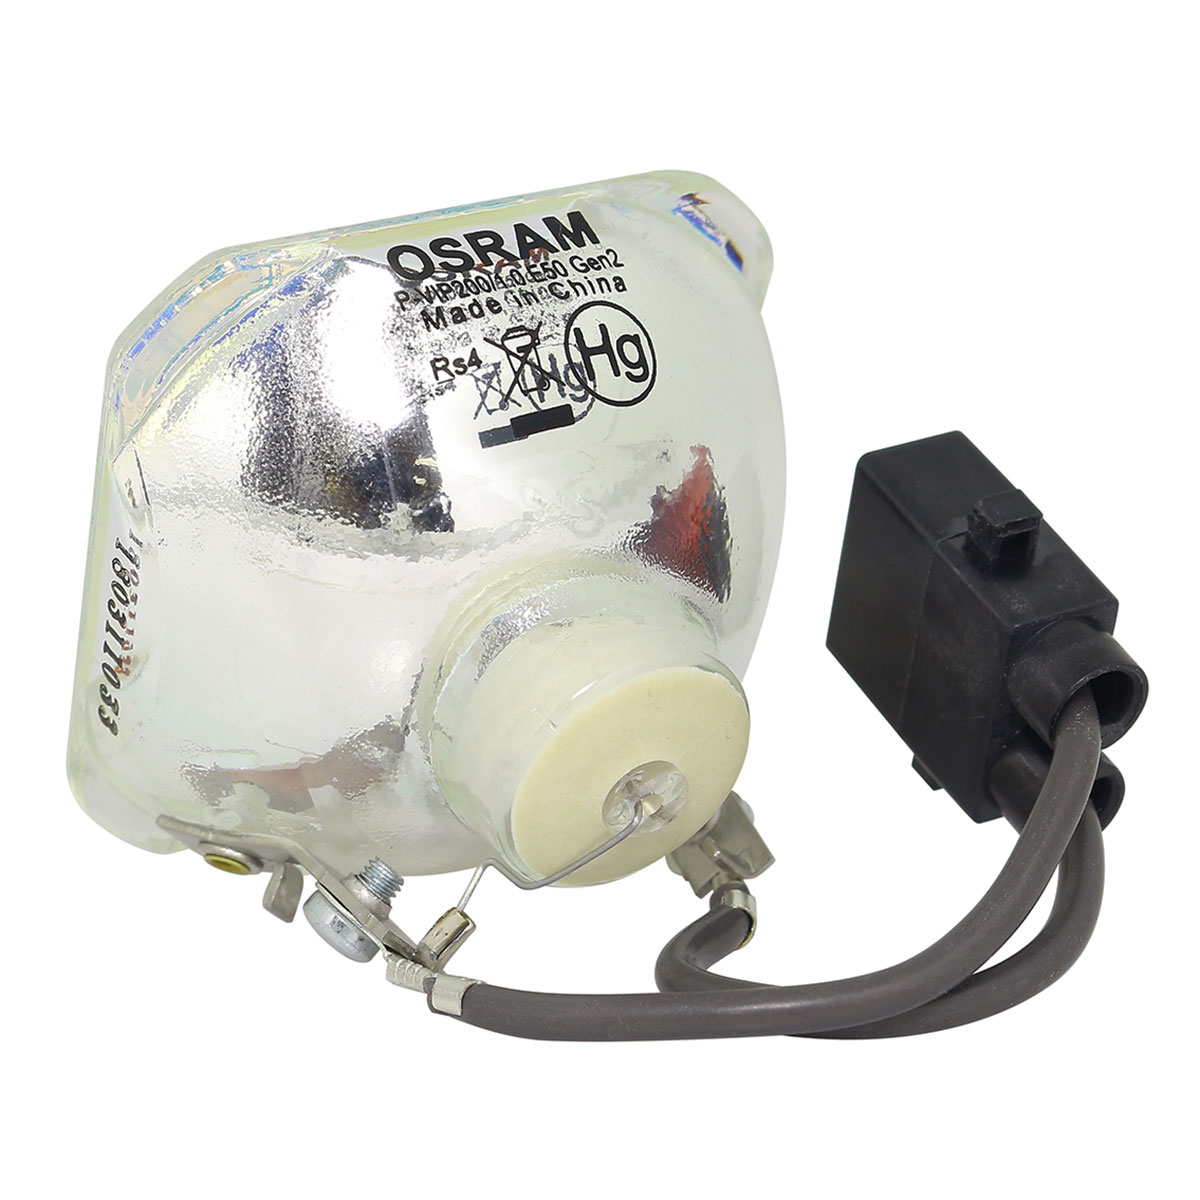 Original Osram Projector Lamp Replacement for Epson PowerLite S5 (Bulb Only) - image 2 of 5